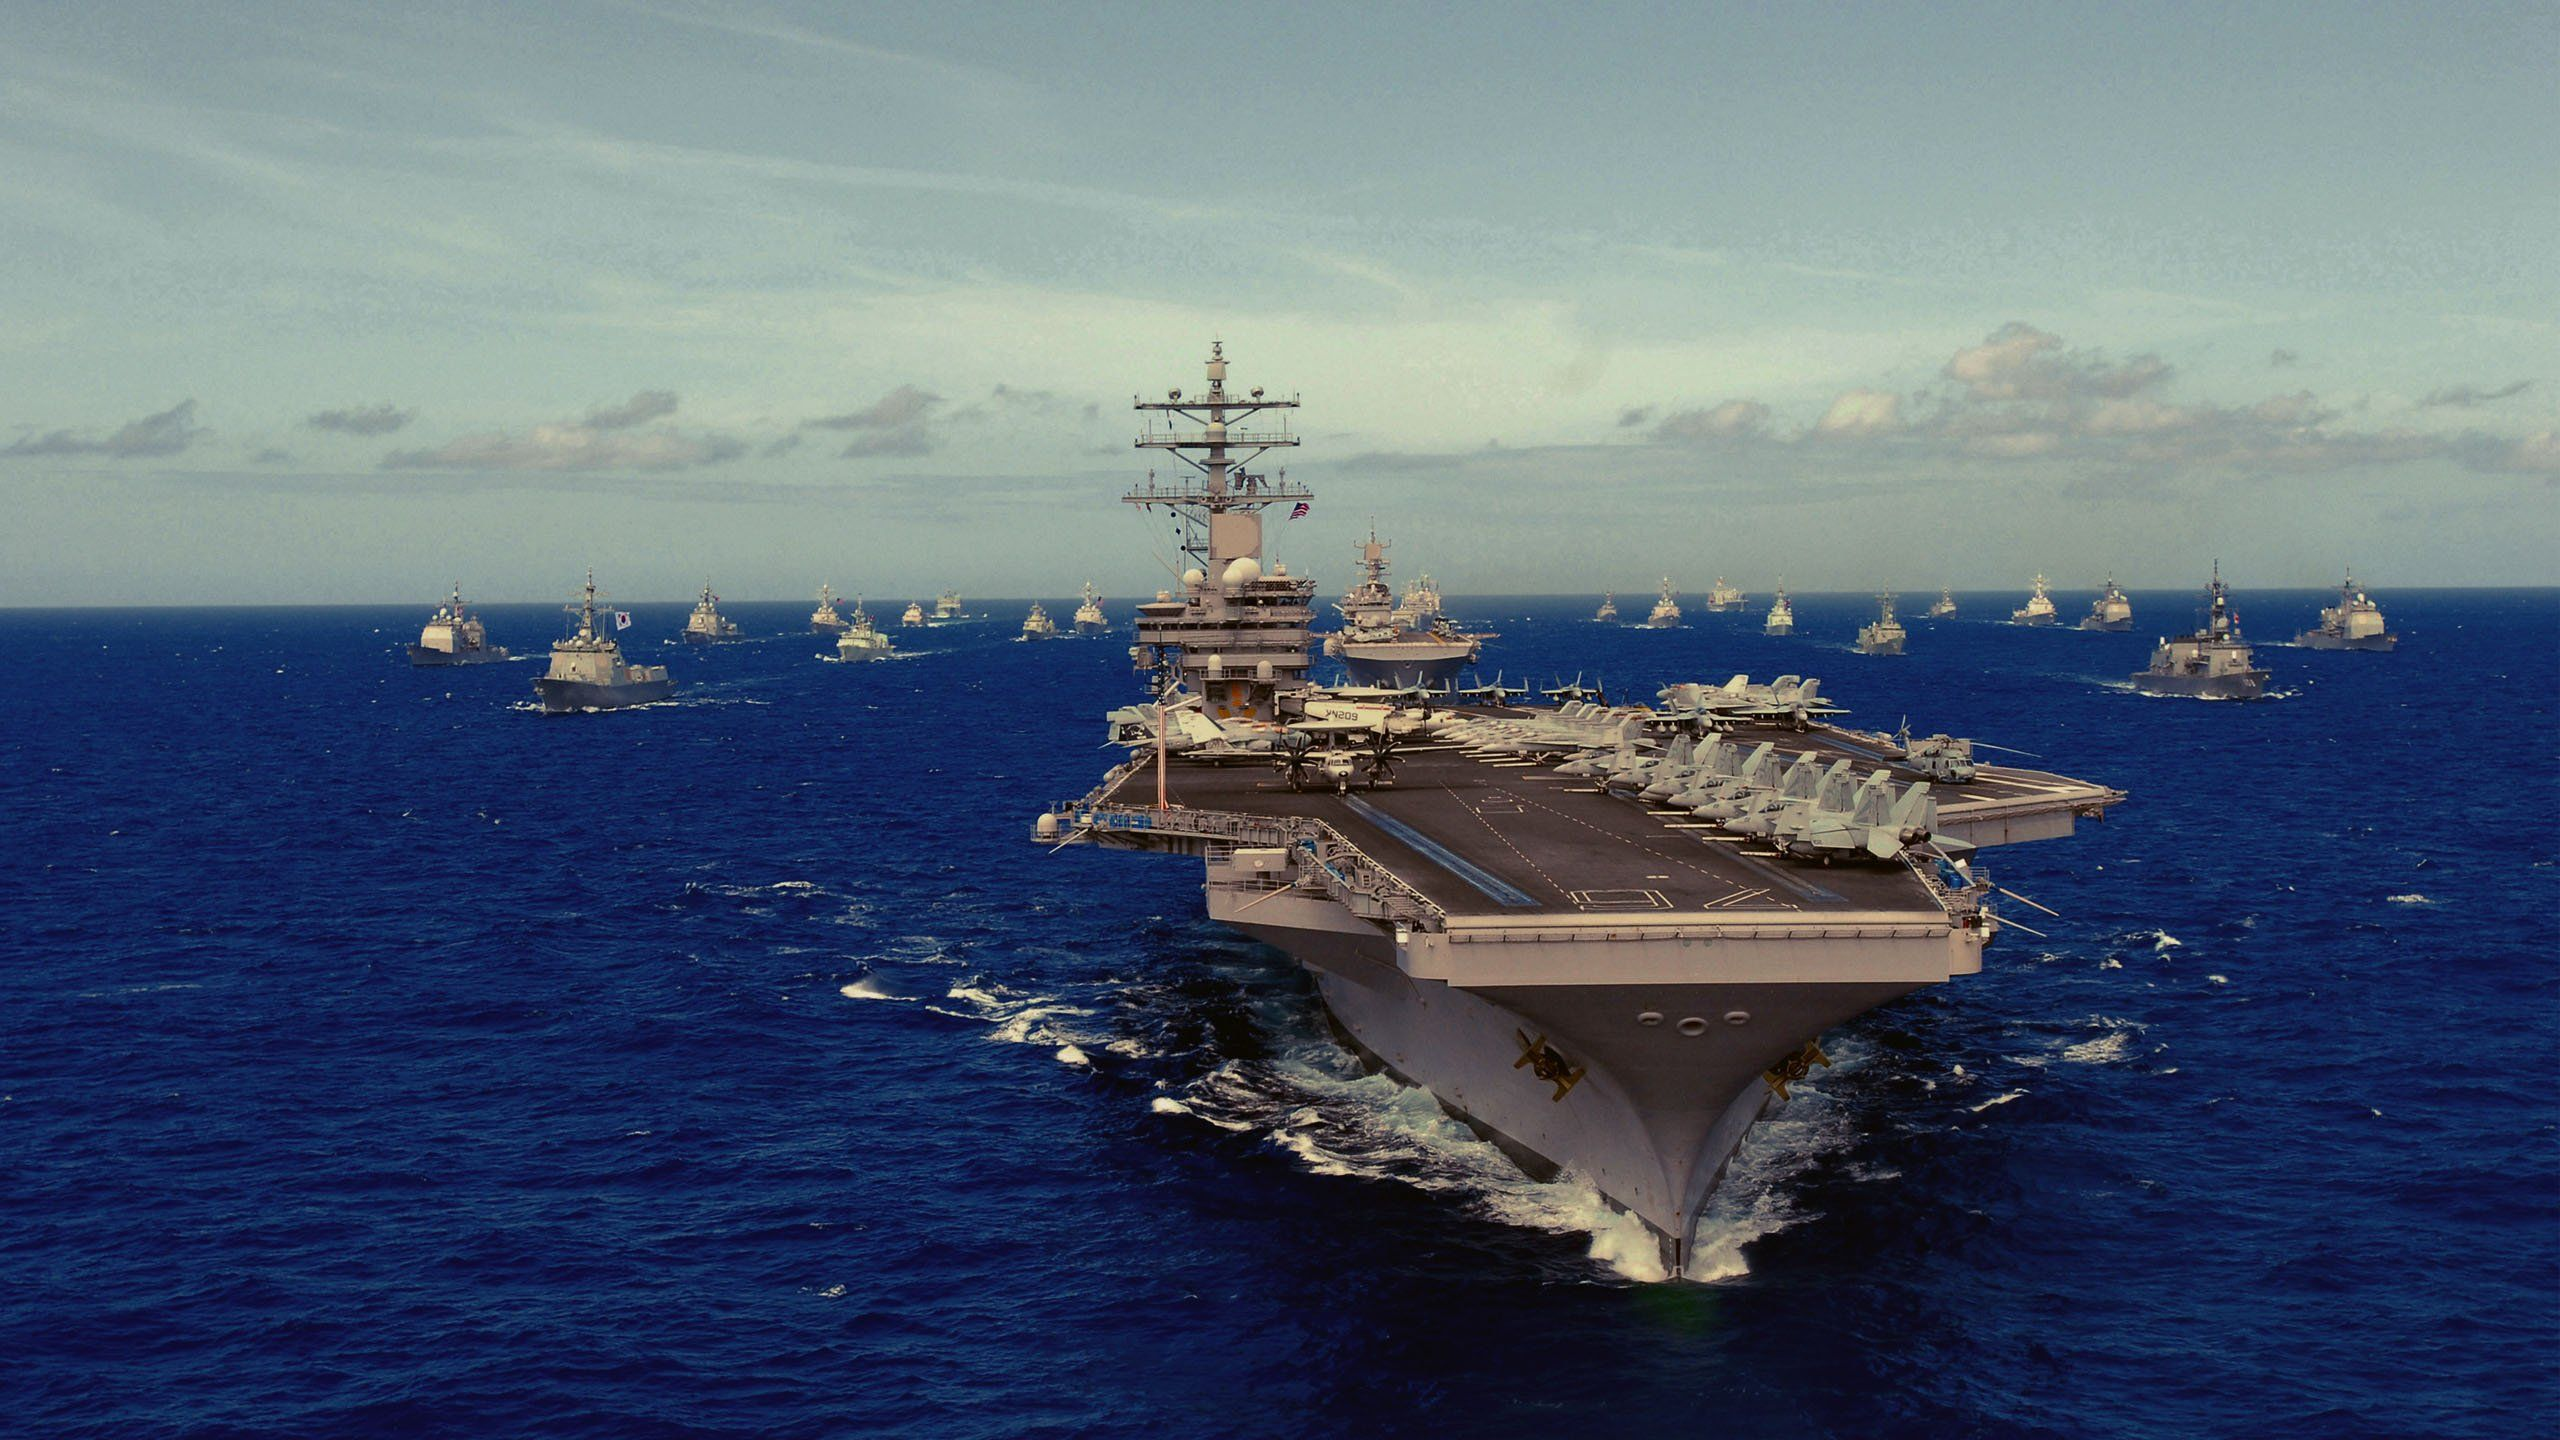 United States Navy wallpapers hd widescreen wallpapers